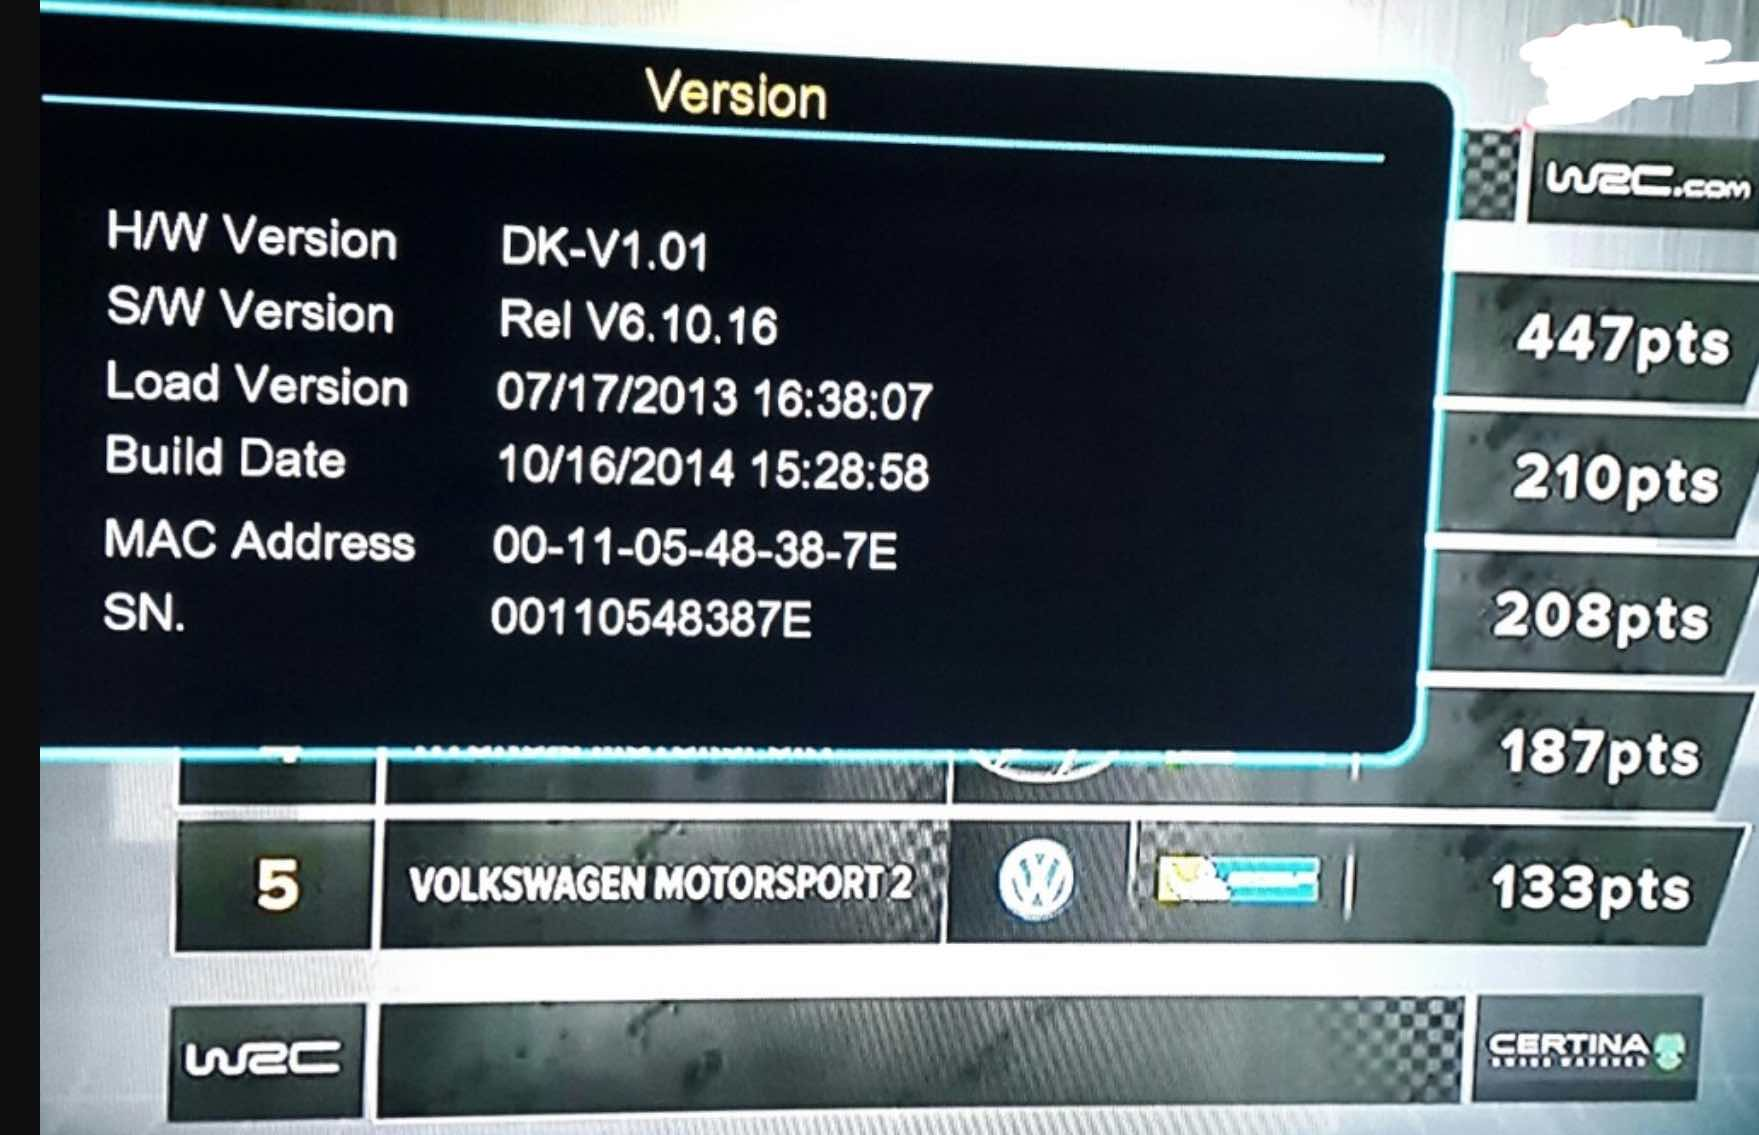 How to fix  BlueScreen/Download From TS Problems On Speed HD, Qsat Q23g and Newer Decoders